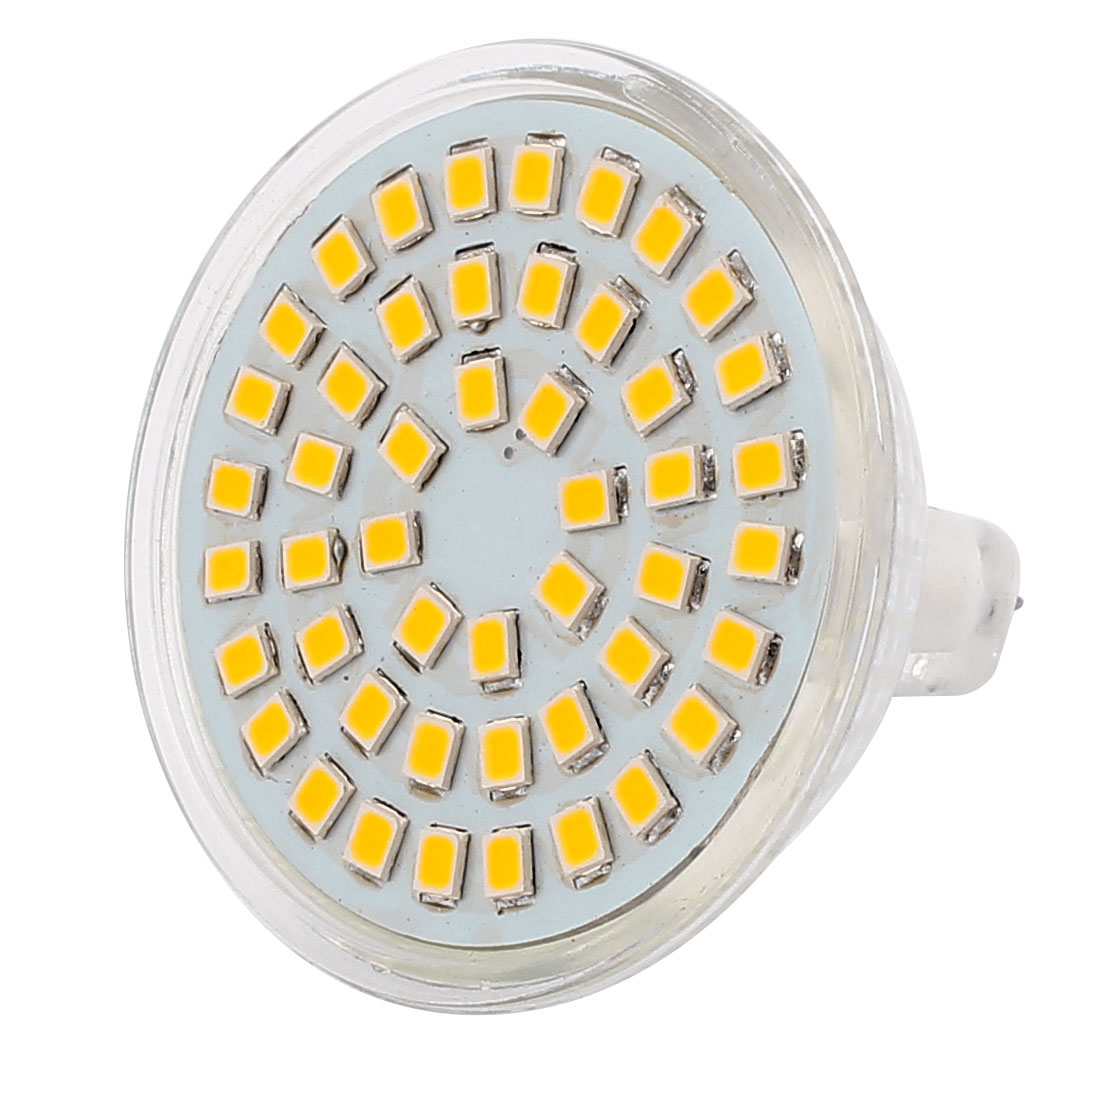 220V 4W MR16 2835 SMD 48 LEDs LED Light Spotlight Down Lamp Lighting Warm White